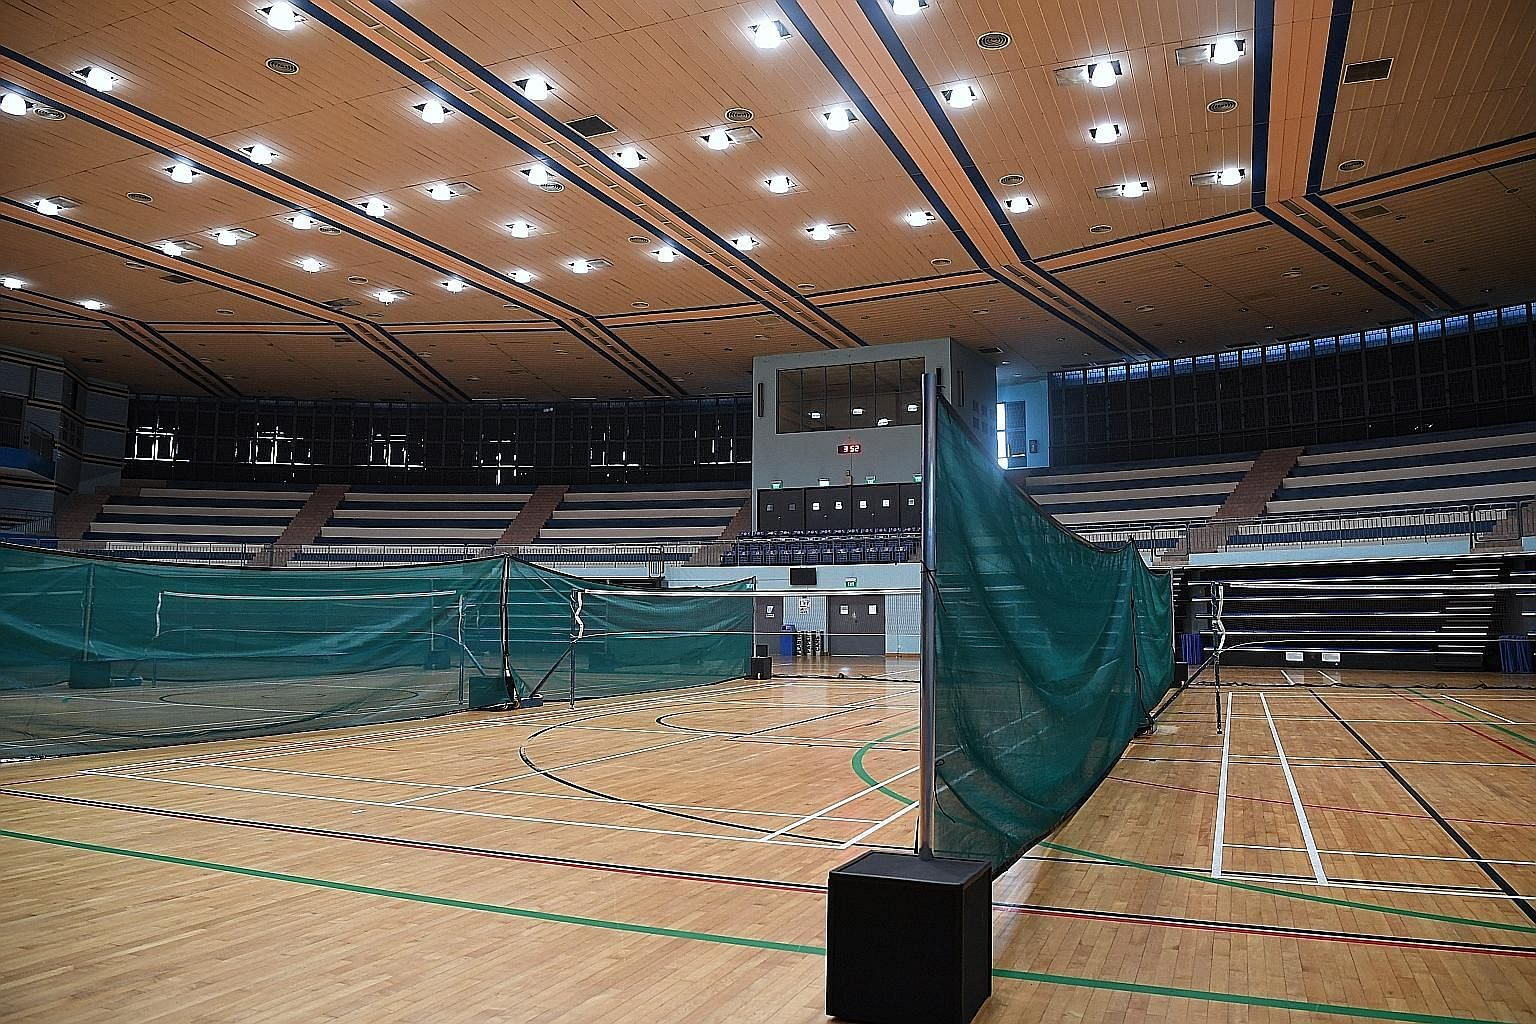 Mesh dividers between badminton courts at Jurong East Indoor Sports Hall, which was closed over the weekend. Of the 29-member group, over half are quarantined with the rest under phone surveillance.